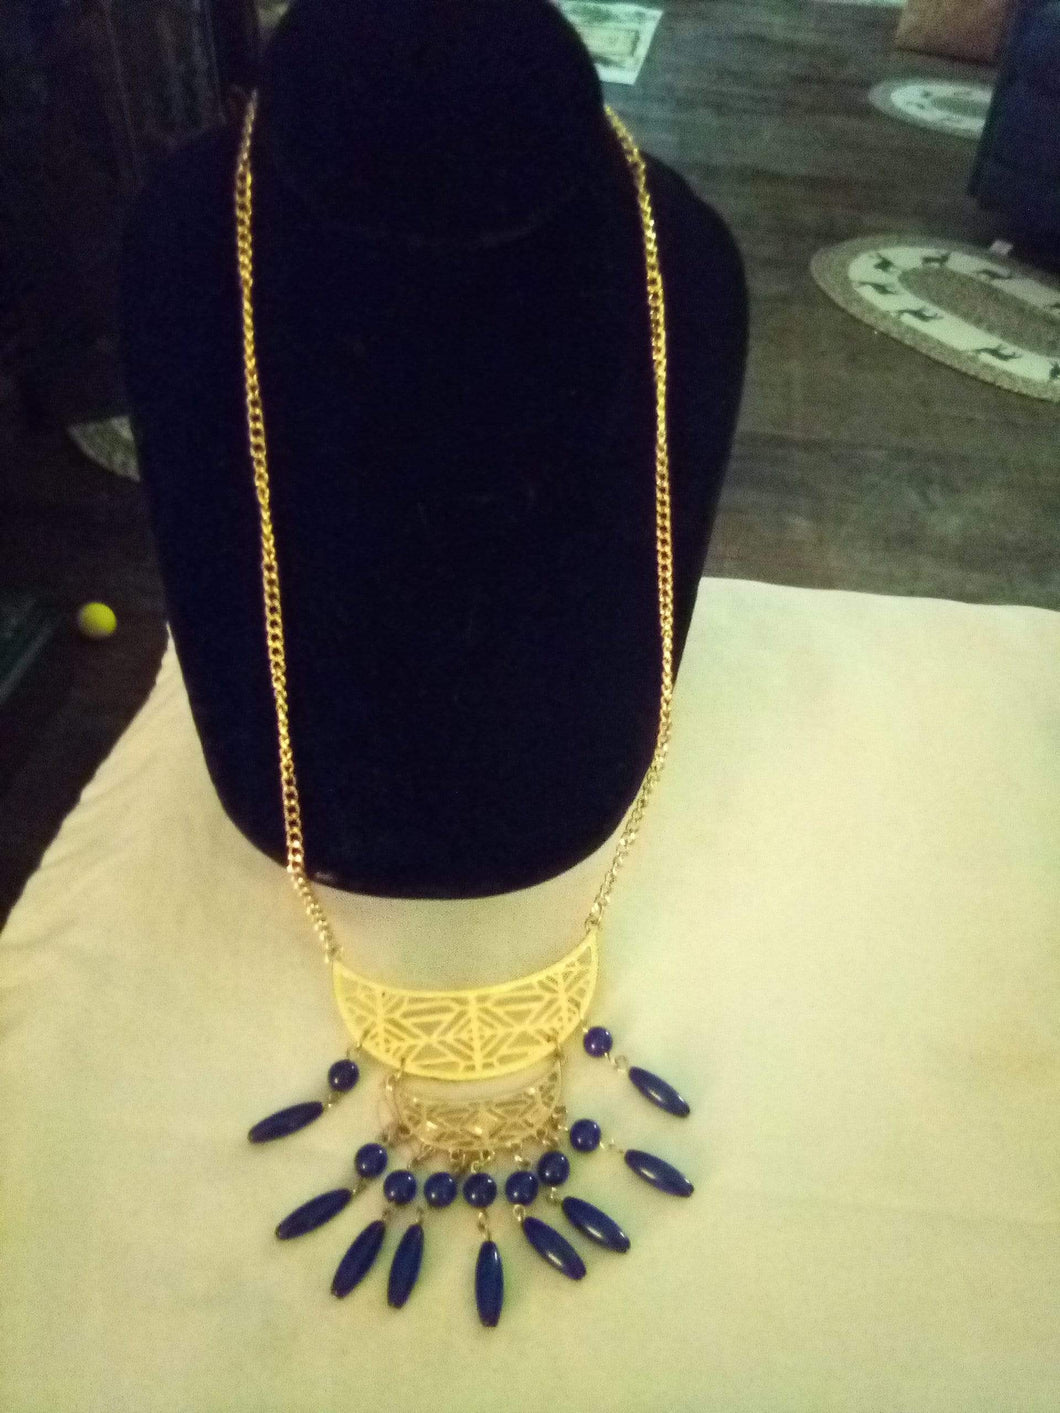 Gold tone dressy long necklace - B&P'sringsnthings